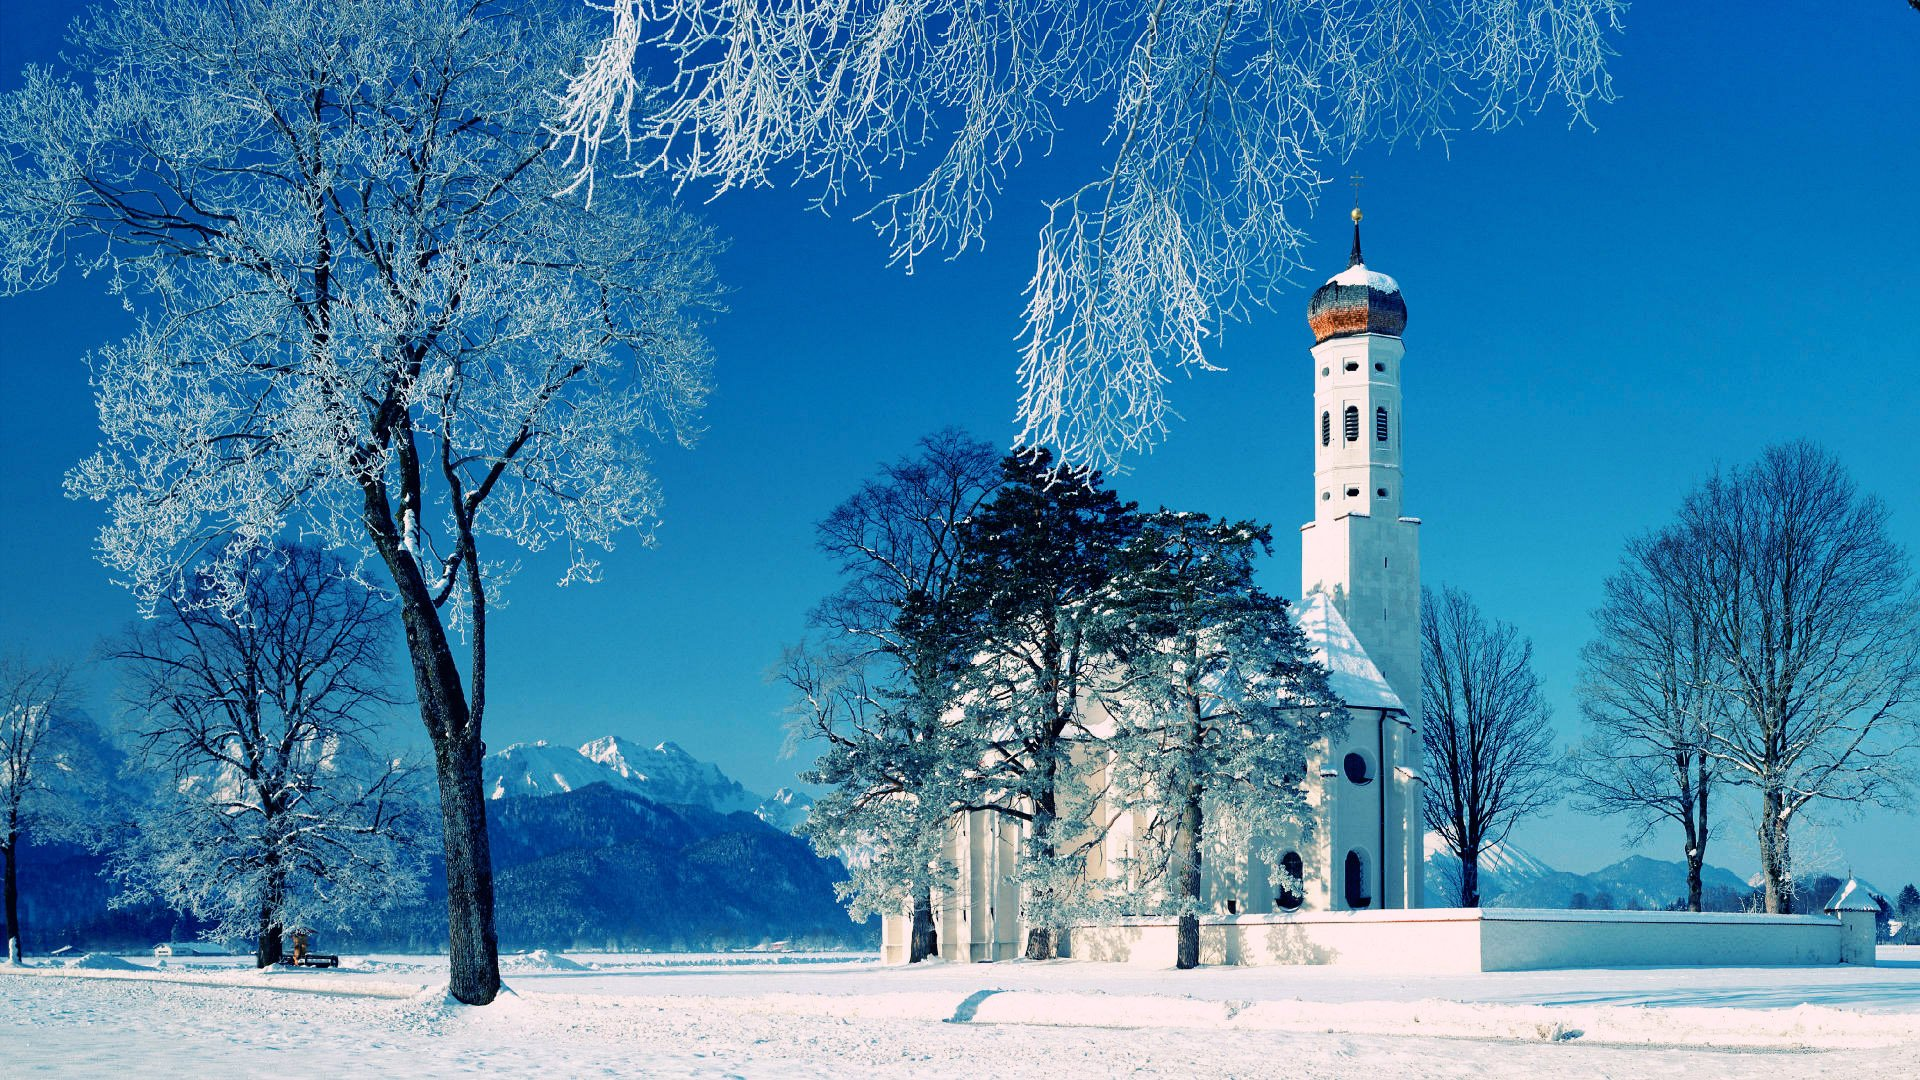 Blog Archive Beautiful Christmas Wallpapers Mac Winter Day 1920x1080